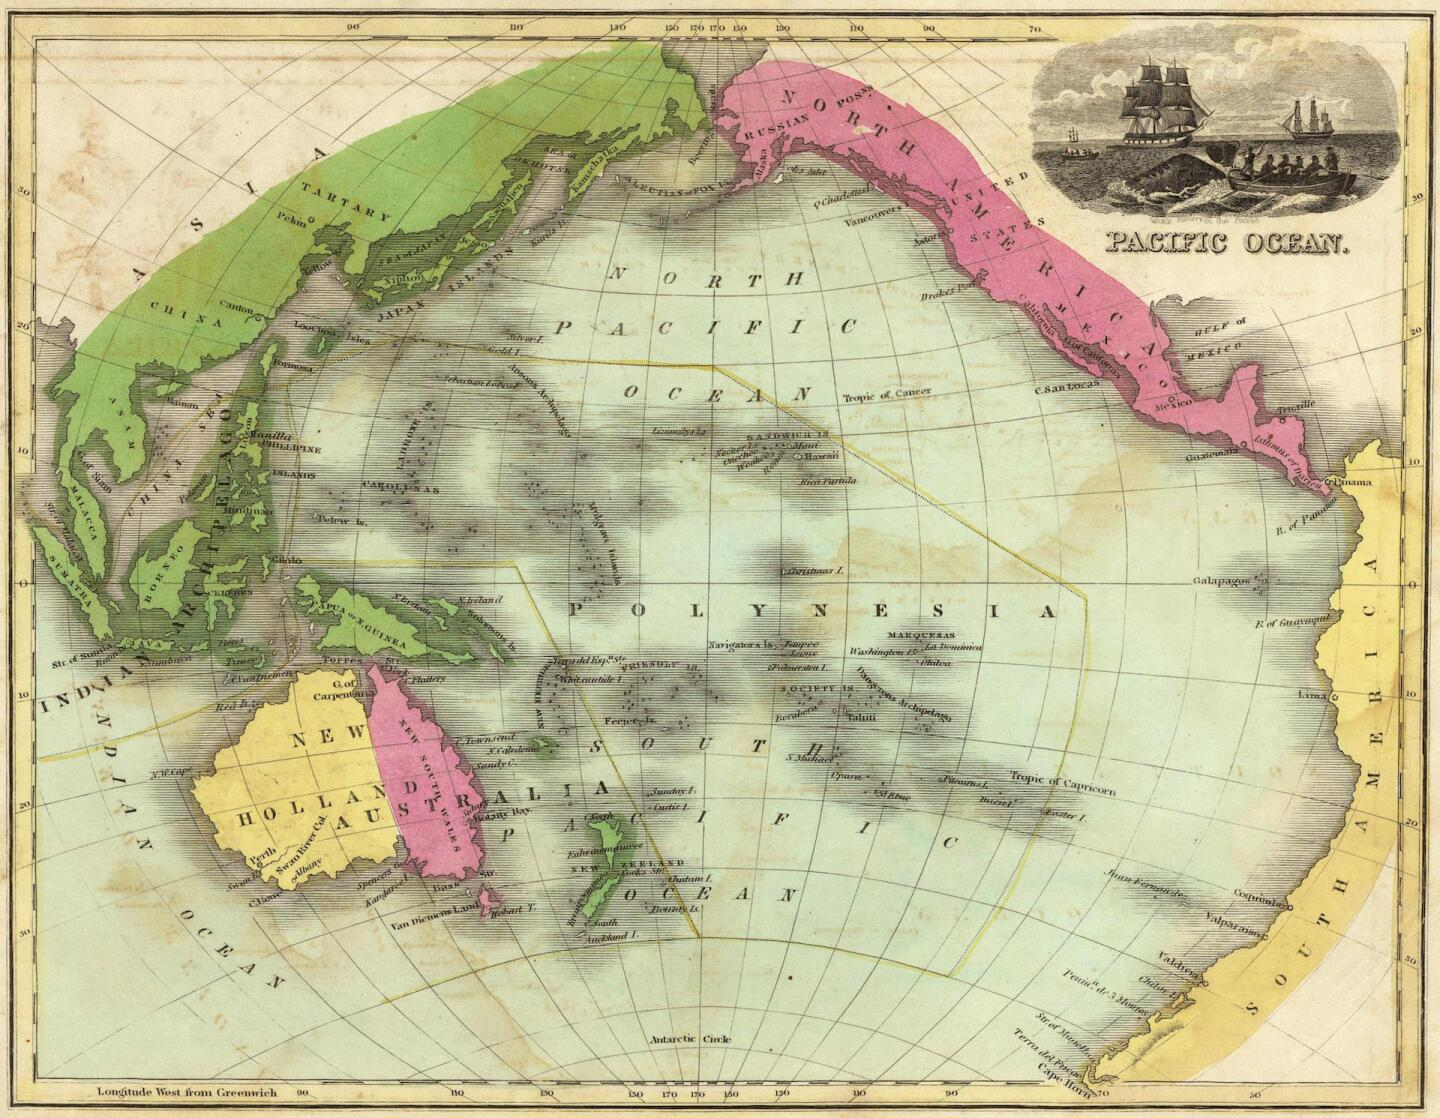 1842 map of the Pacific Ocean